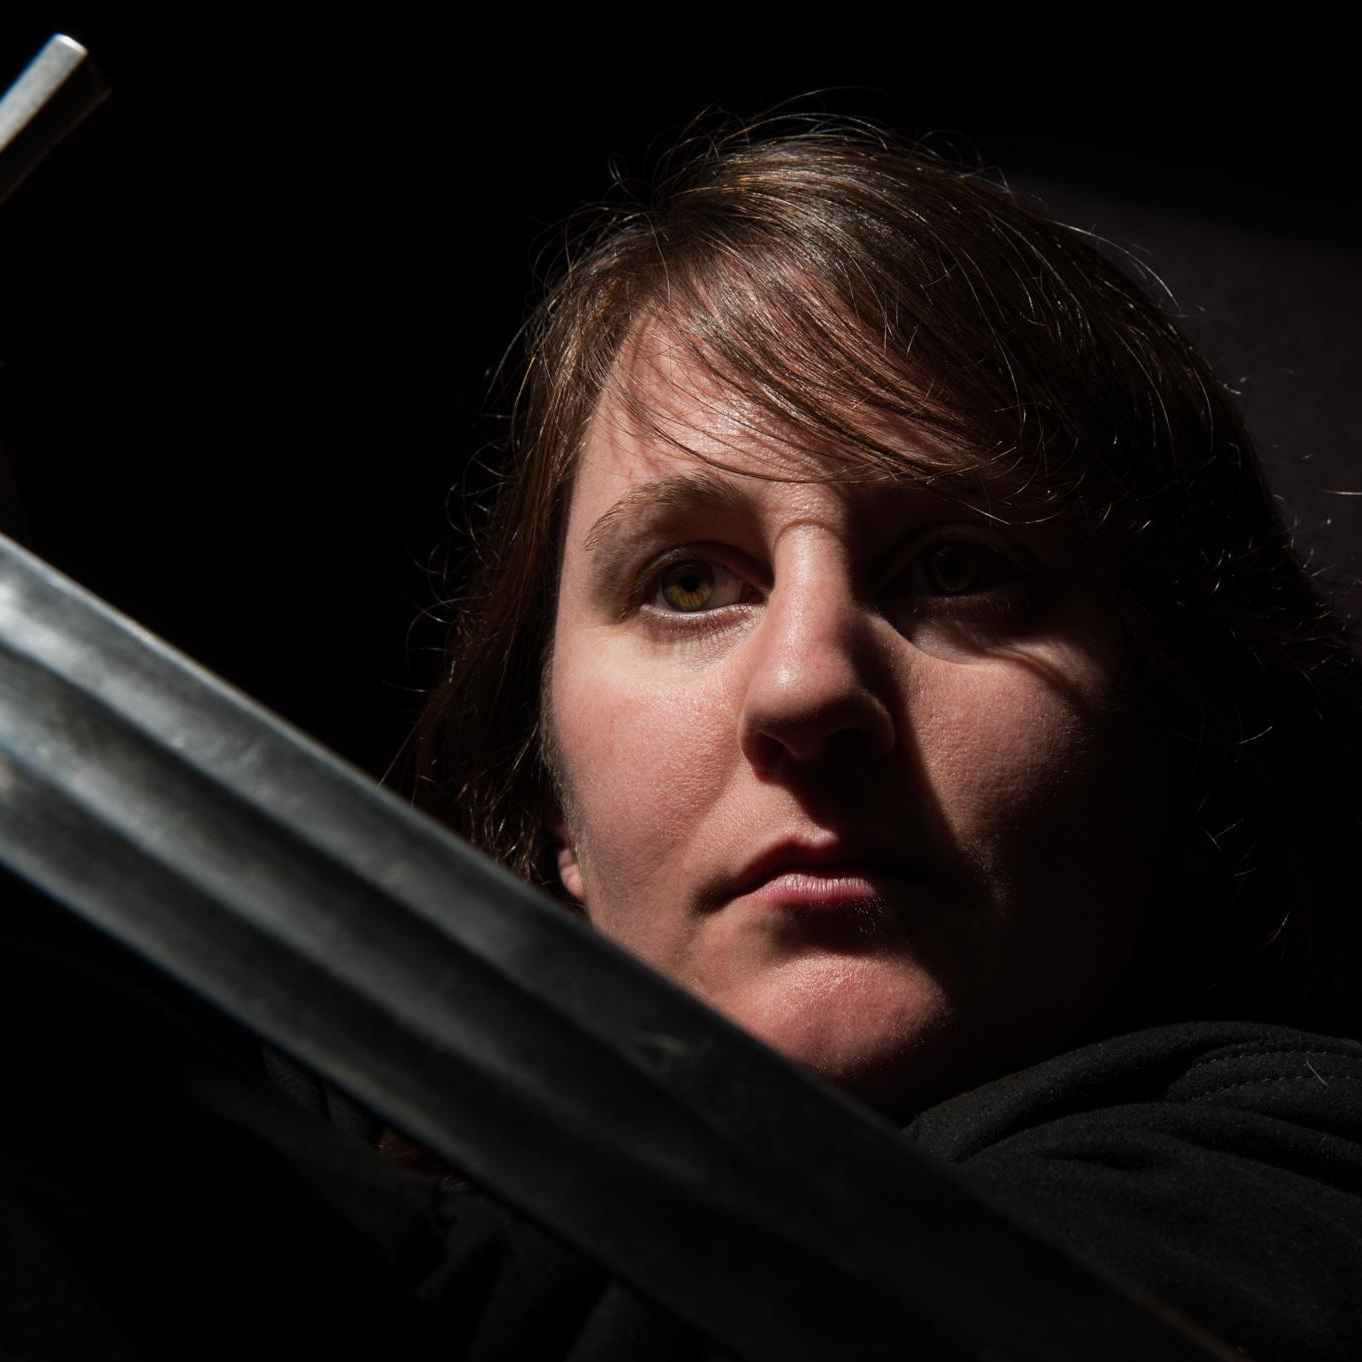 Julie Olson  Julie Olson is began studying German Longsword with Athena School of Arms in 2013. Though the Longsword is her primary weapon, she has dabbled in Italian Rapier, Sword & Buckler, Broadsword, and Dagger. Julie has received top-5 placements at a few regional/national tournaments, as well as Technical Excellence awards. She is one of the head instructors at Athena, Manager of the New England Sword Gathering - a league for Northeast HEMA clubs - and Event Director of Iron Gate Exhibition, the largest HEMA Tournament in the Northeast.  Class: Corner Coaching with Confidence